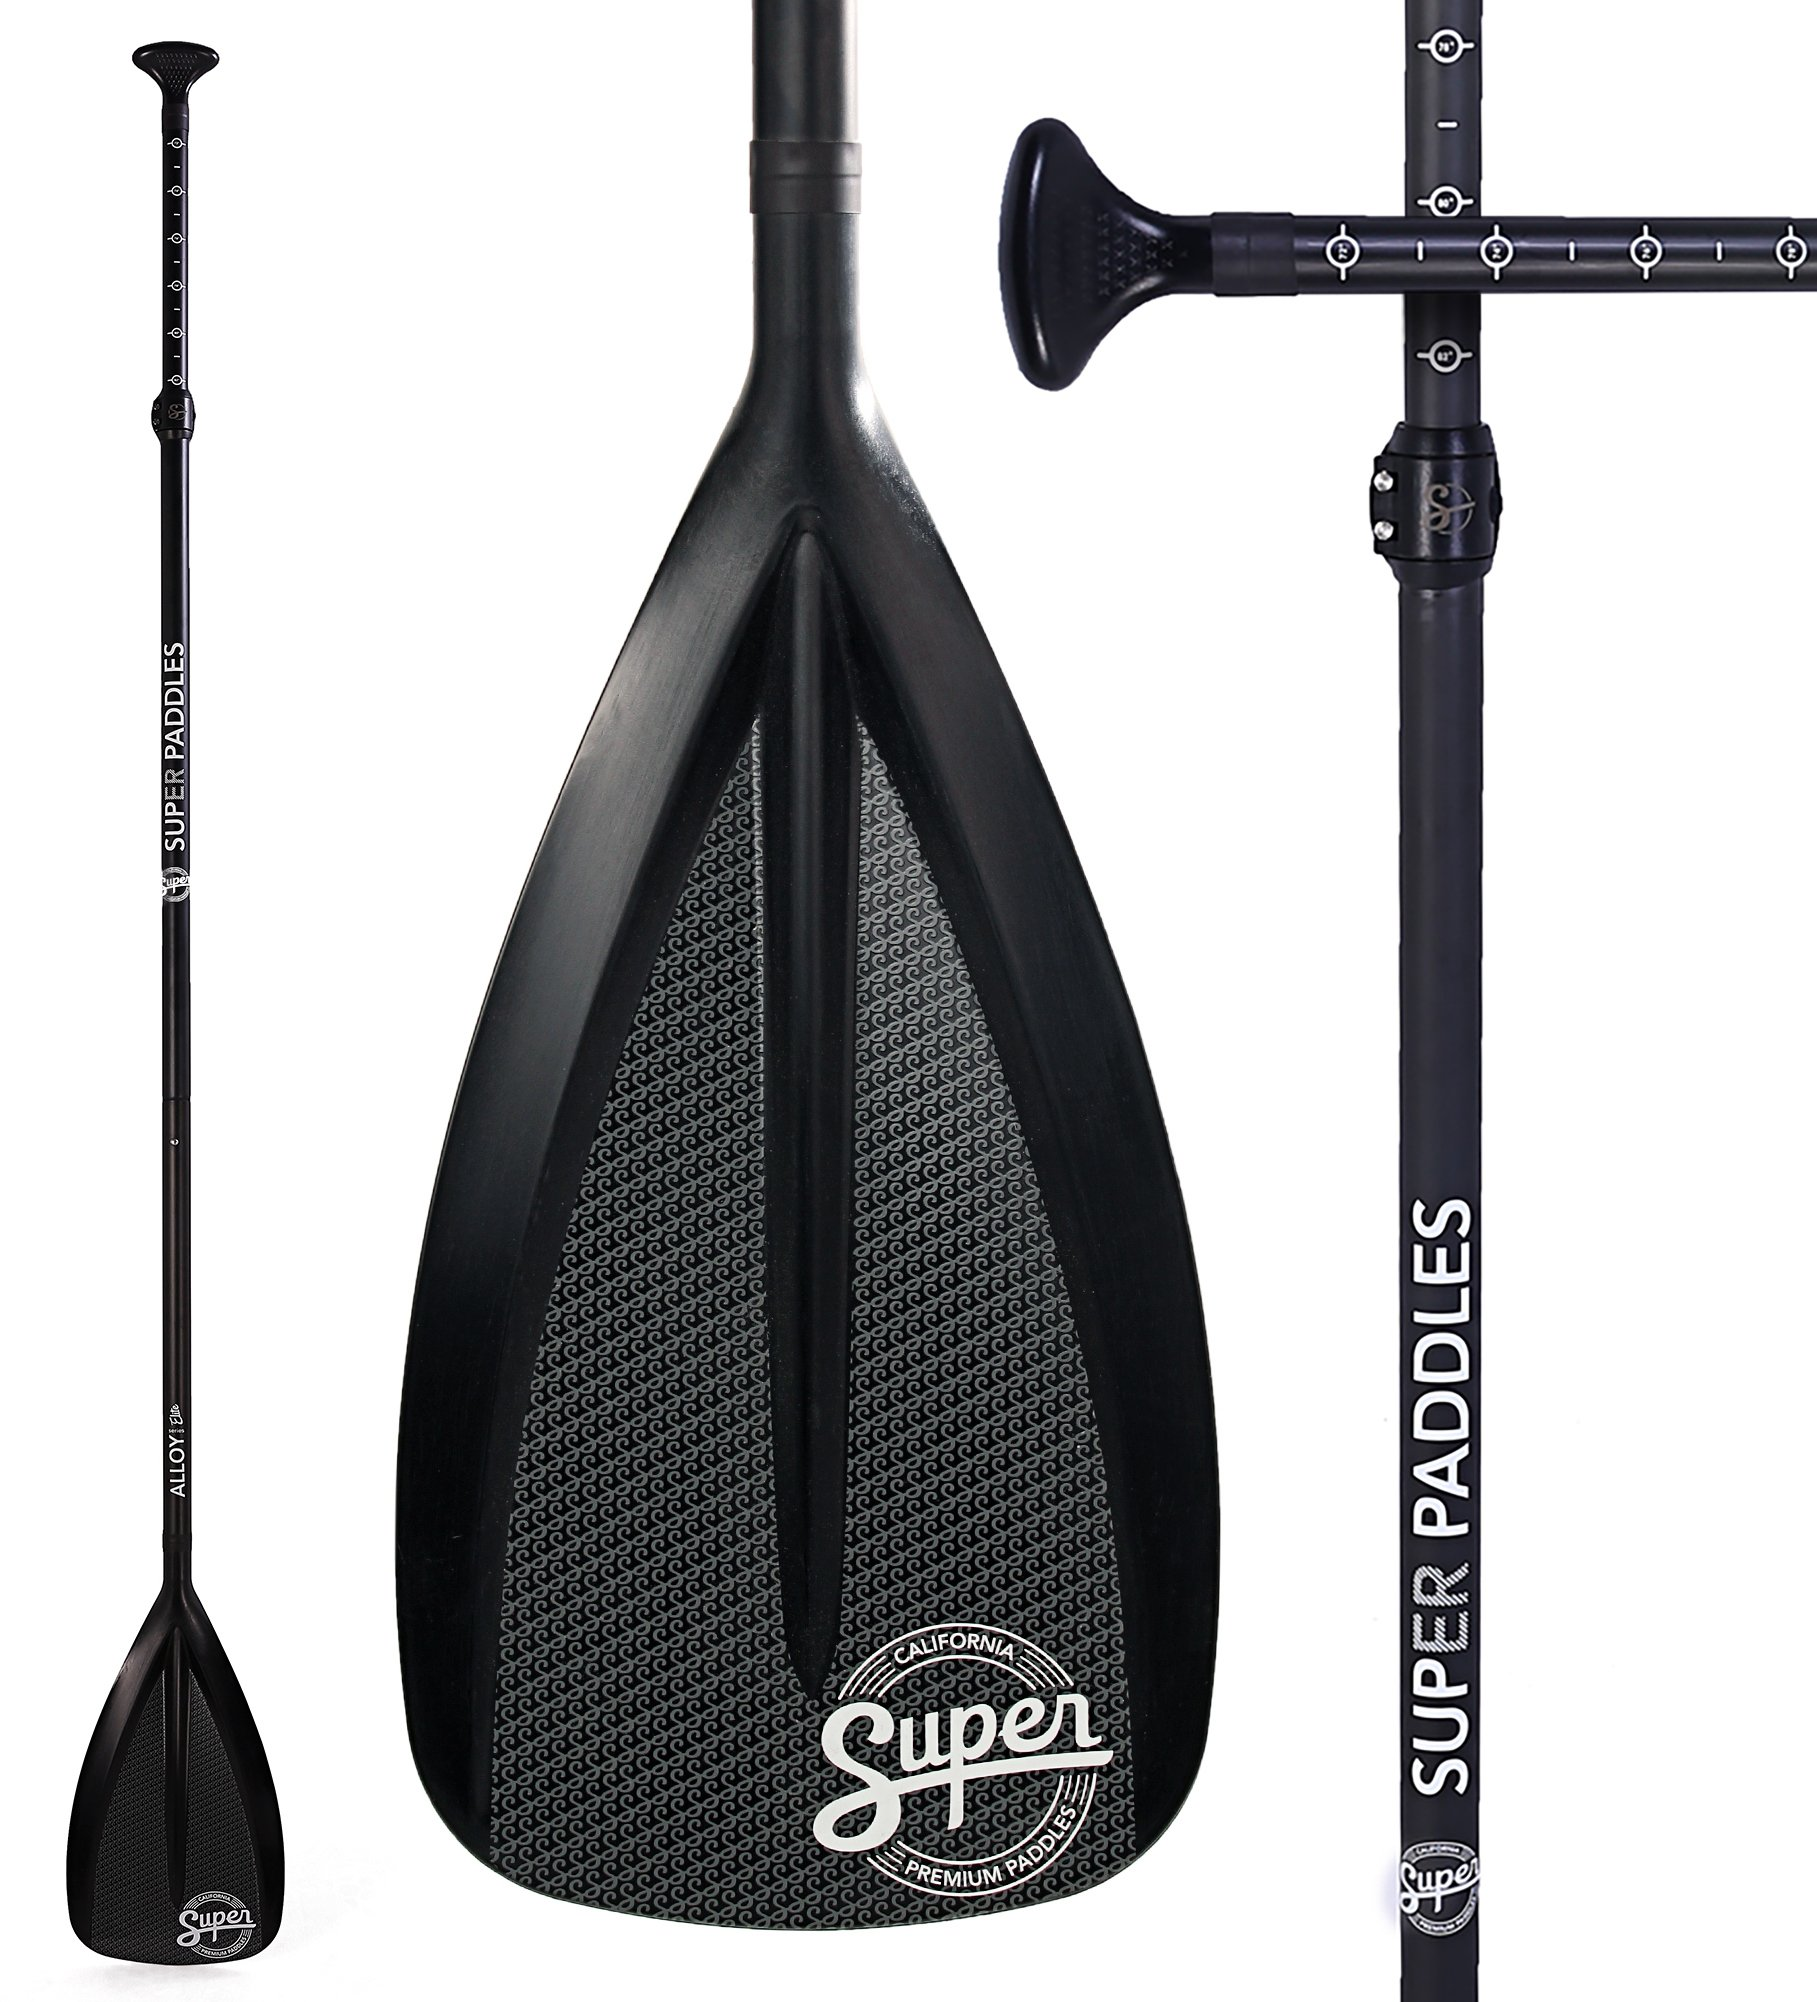 Alloy SUP Paddle - 3-Piece Adjustable Stand Up Paddle with Paddle Bag. Super Paddles - Alloy Series Elite - Aluminum Shaft, Nylon Blade by Super Paddles (Image #1)